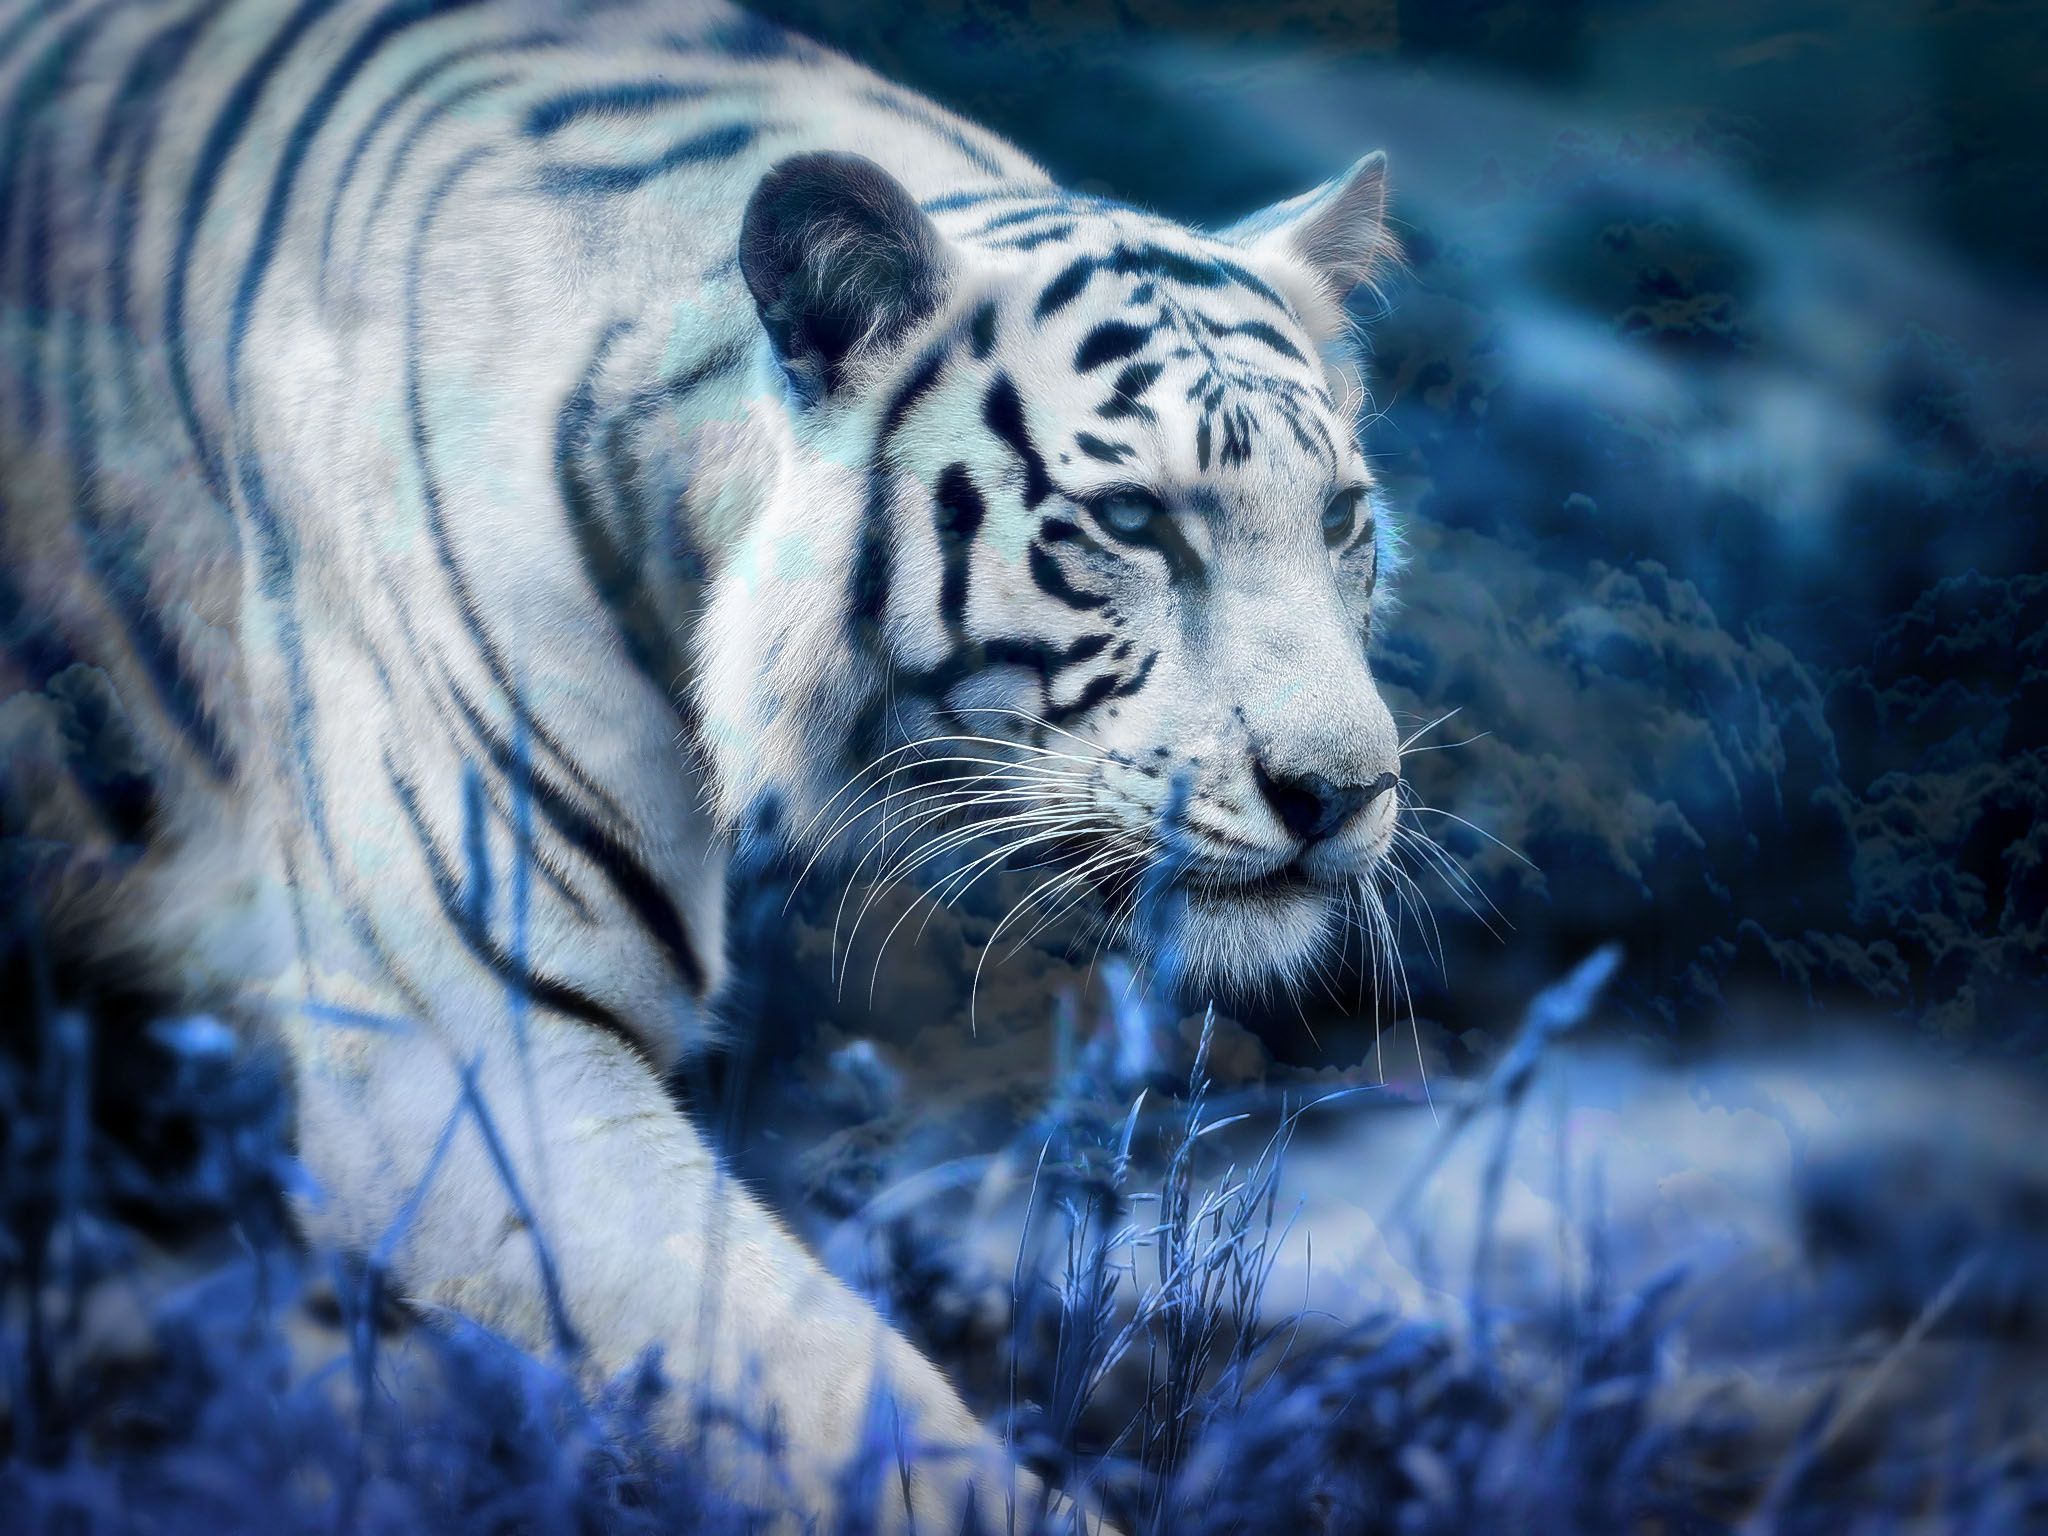 White Tiger Blue Clouds Computer Wallpapers Desktop Backgrounds 2048x1536 Id 561244 Tiger Pictures White Tiger Pictures White Tiger